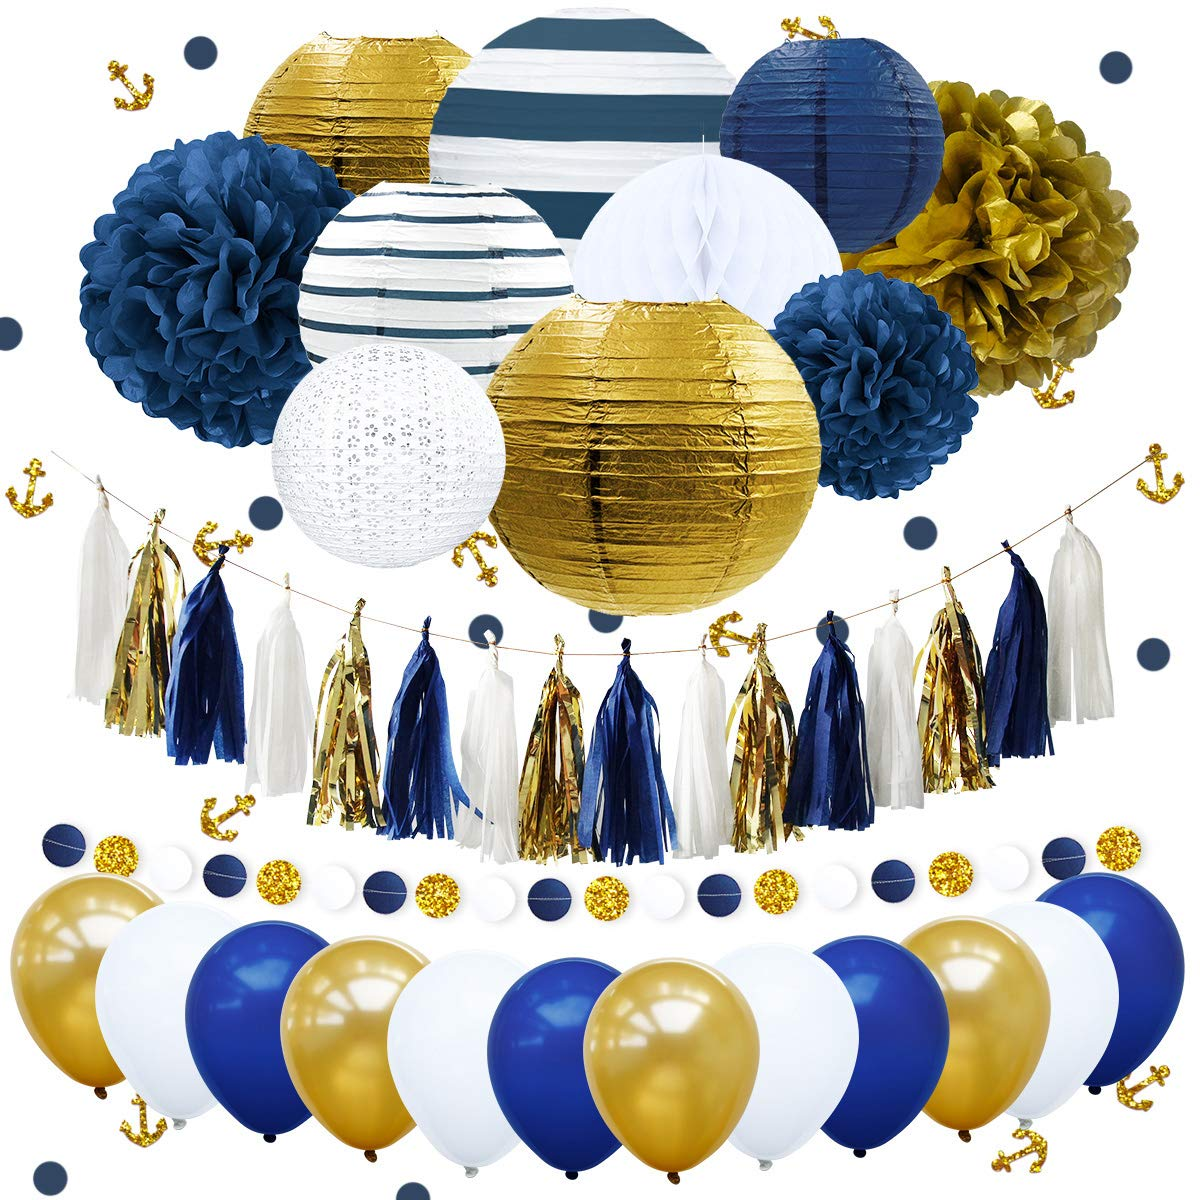 NICROLANDEE Nautical Bachelorette Party Decorations Navy Stripe Gold Paper Lanterns Royal Blue Tissue Pom Poms Flower Glitter Anchor Confetti Tassel Garland Party Balloon Wedding Bridal Baby Shower by NICROLANDEE